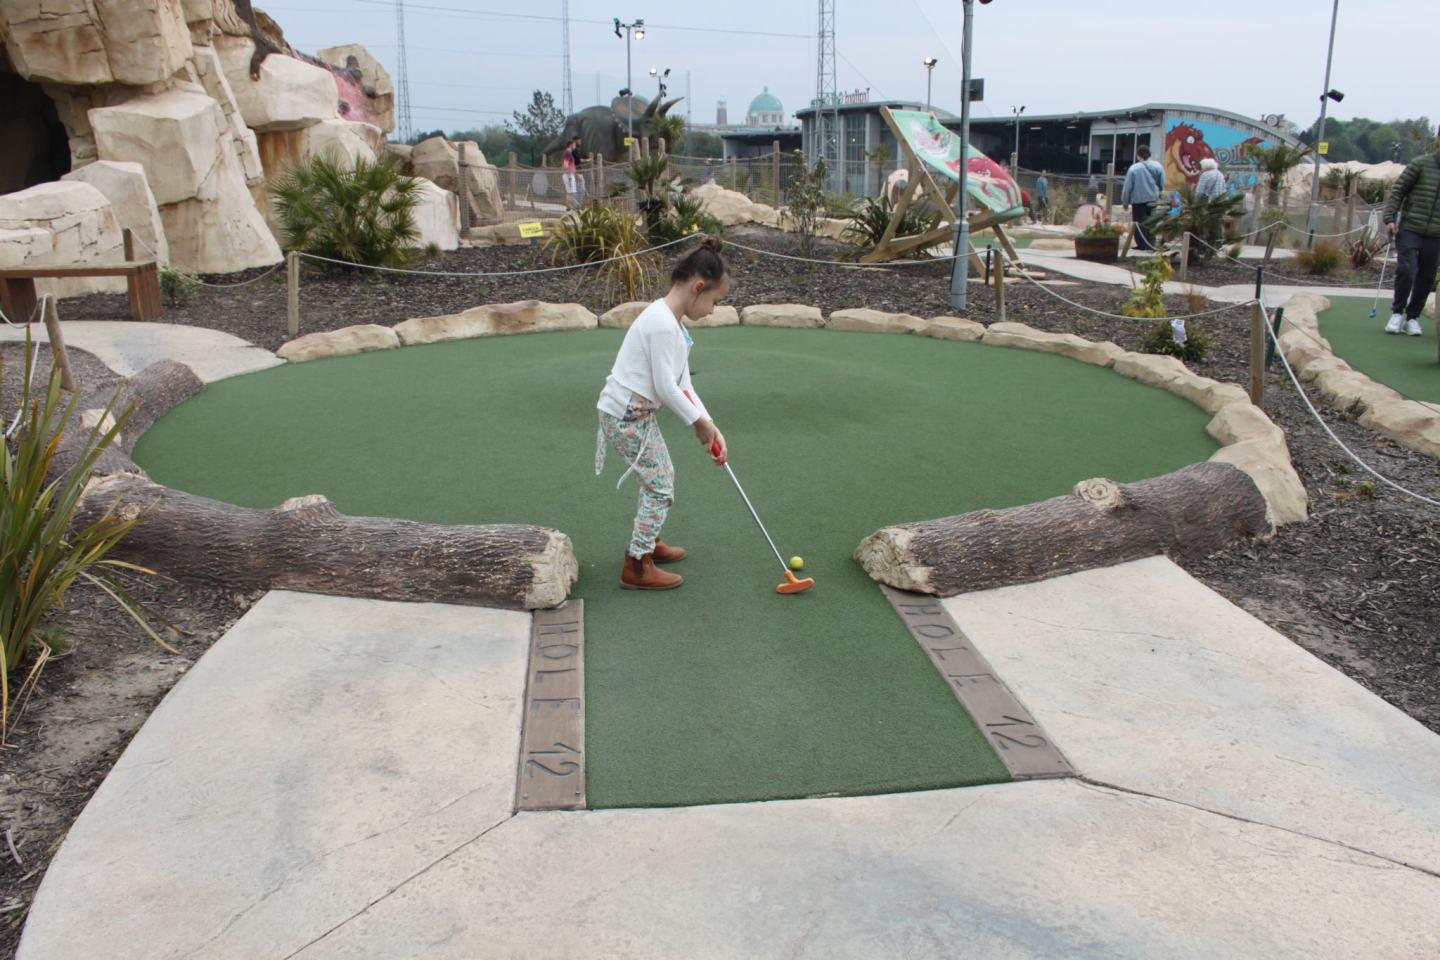 Dino Falls Adventure 'Crazy' Golf